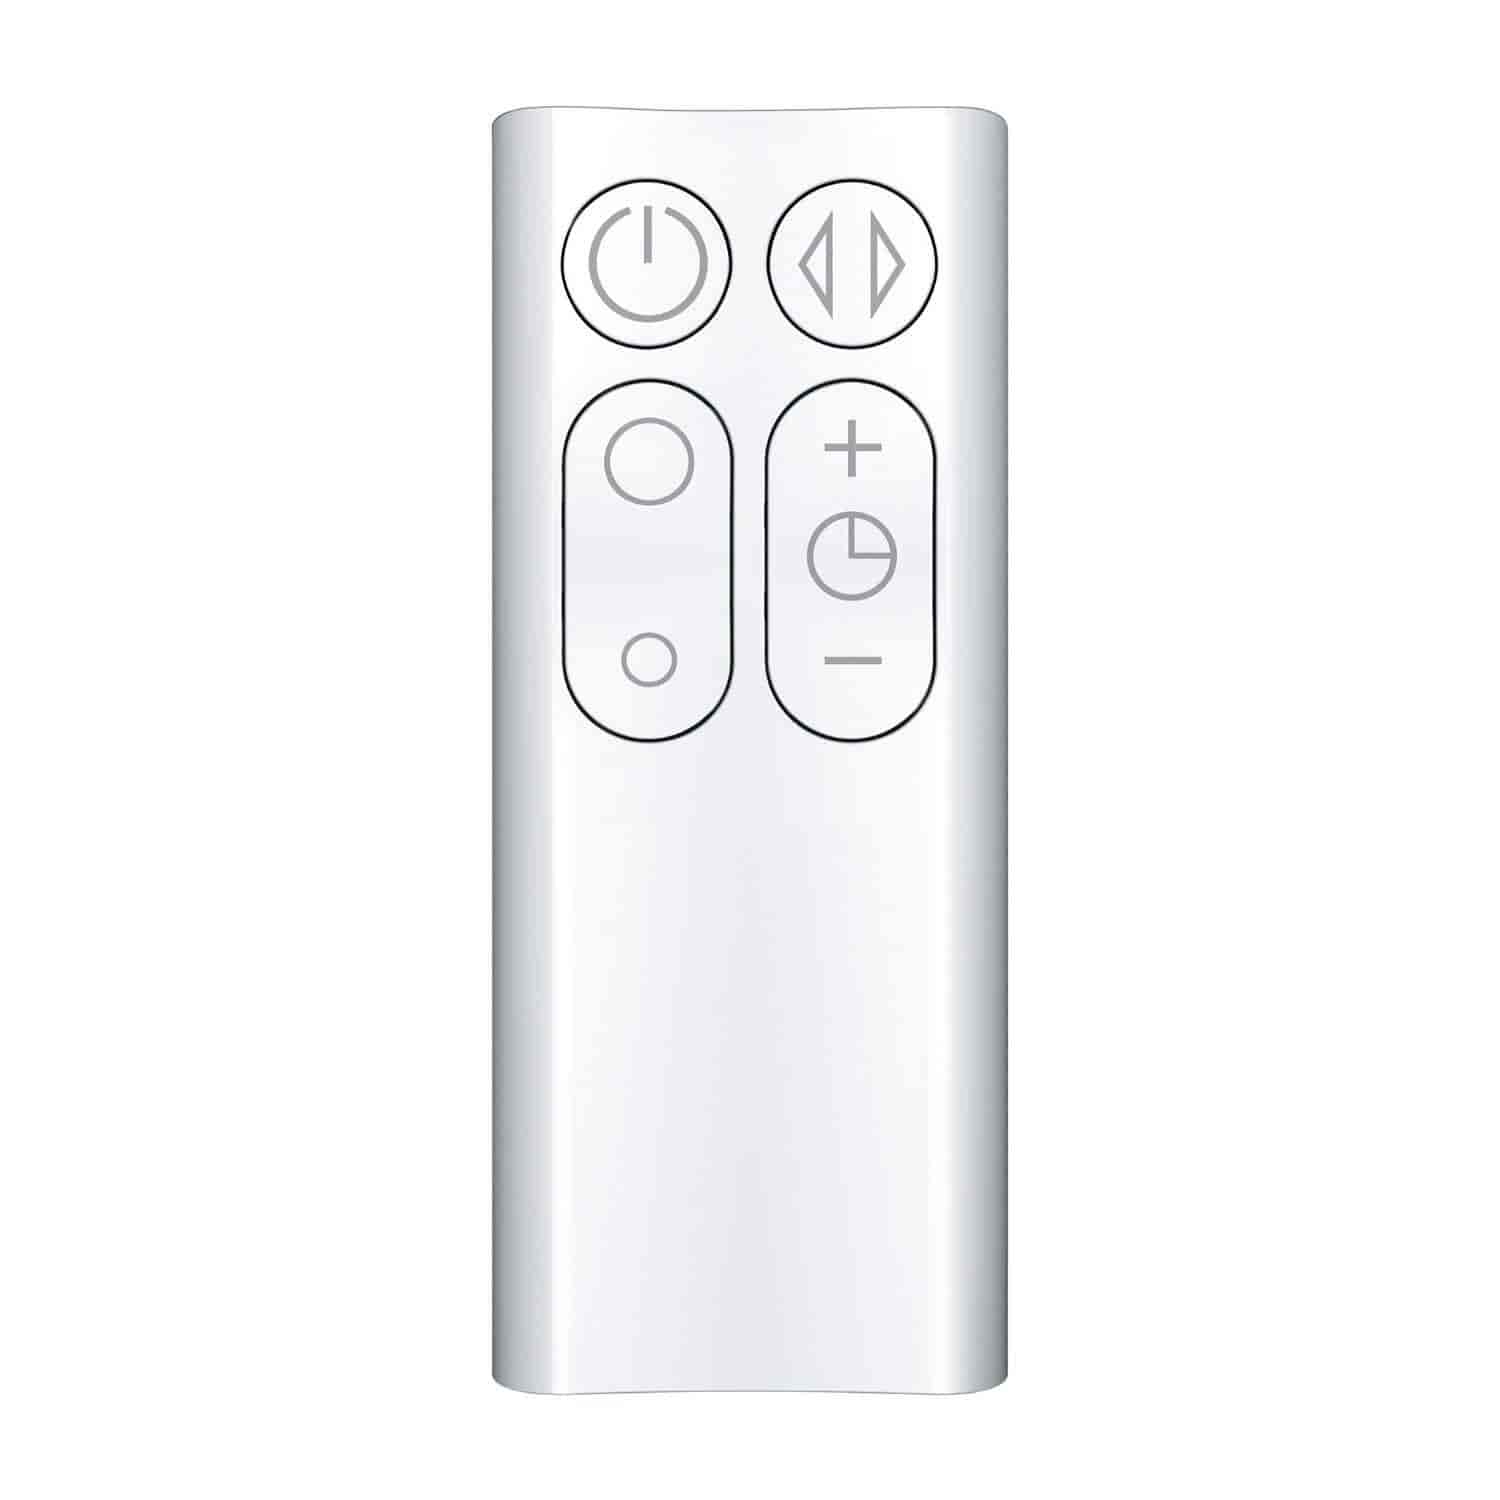 control pedestal remote and dyson reviews for fan lasko residential industrial cyclone best